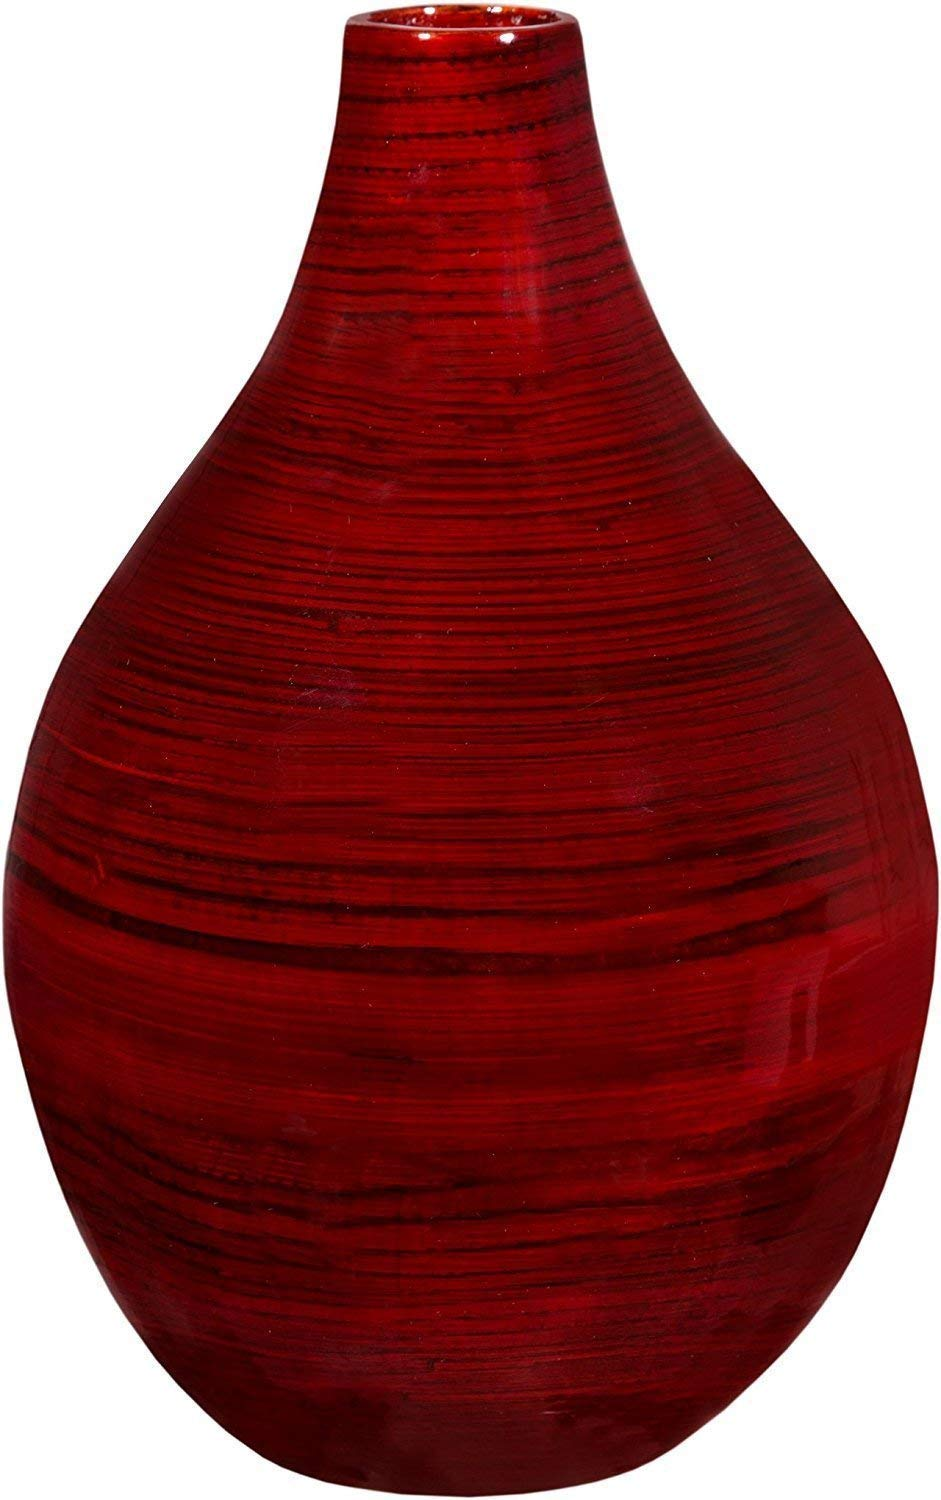 Decorative vase for home décor by Emenest | Holiday Party Table Centerpiece | Real Painted Bamboo Wood Accent Piece | Deep Red Color |Lightweight Yet Sturdy for Home or Office | Best Housewarming Gift